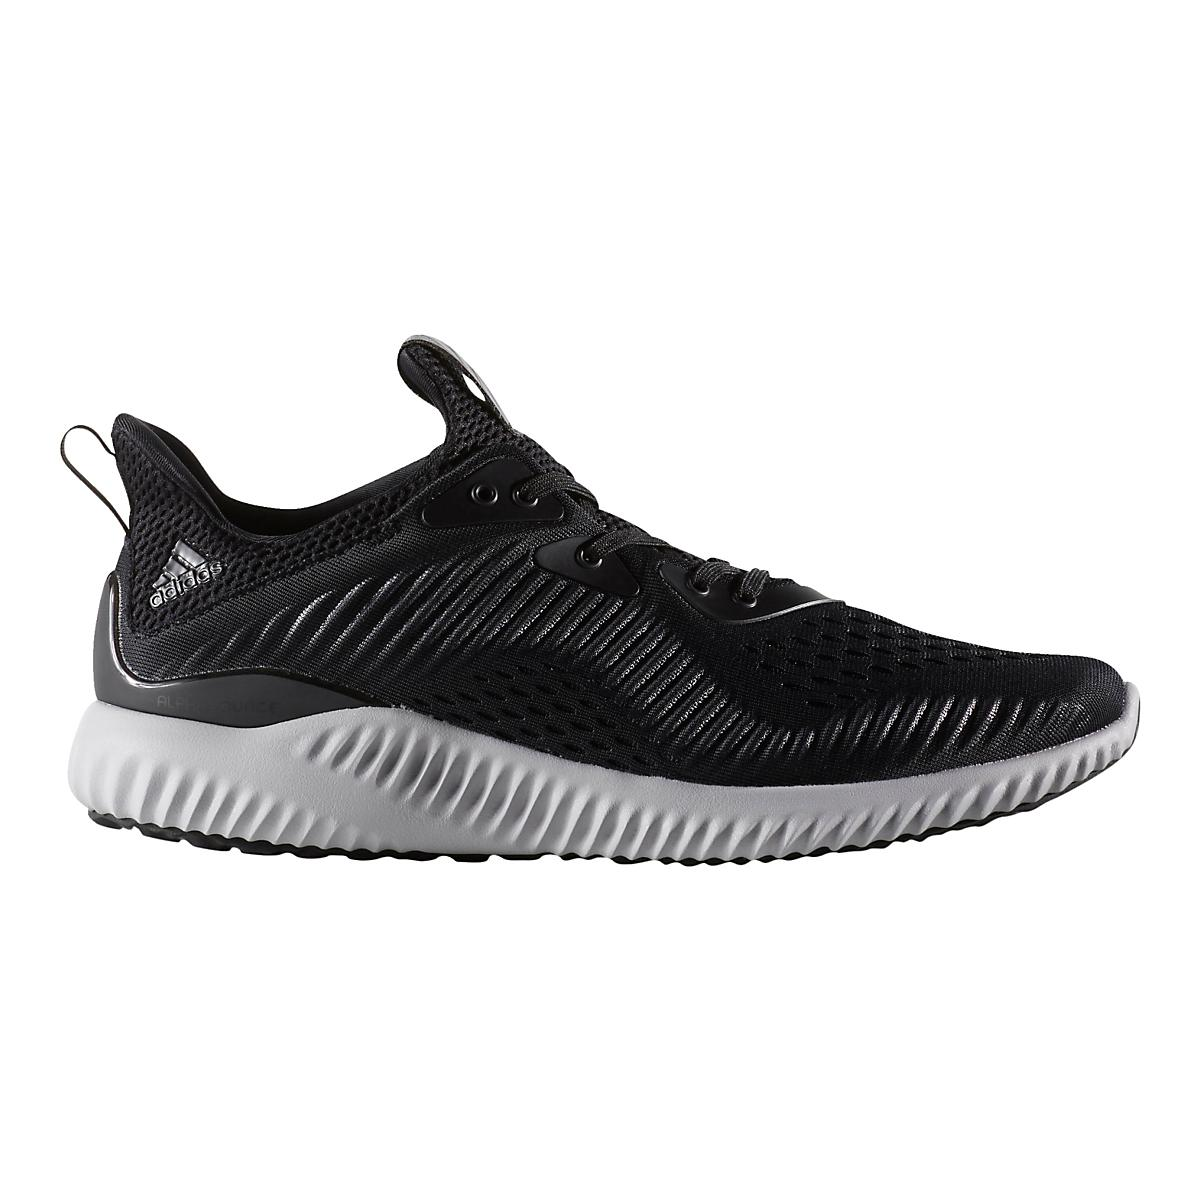 eba4d5d530856 Mens adidas AlphaBounce EM Running Shoe at Road Runner Sports